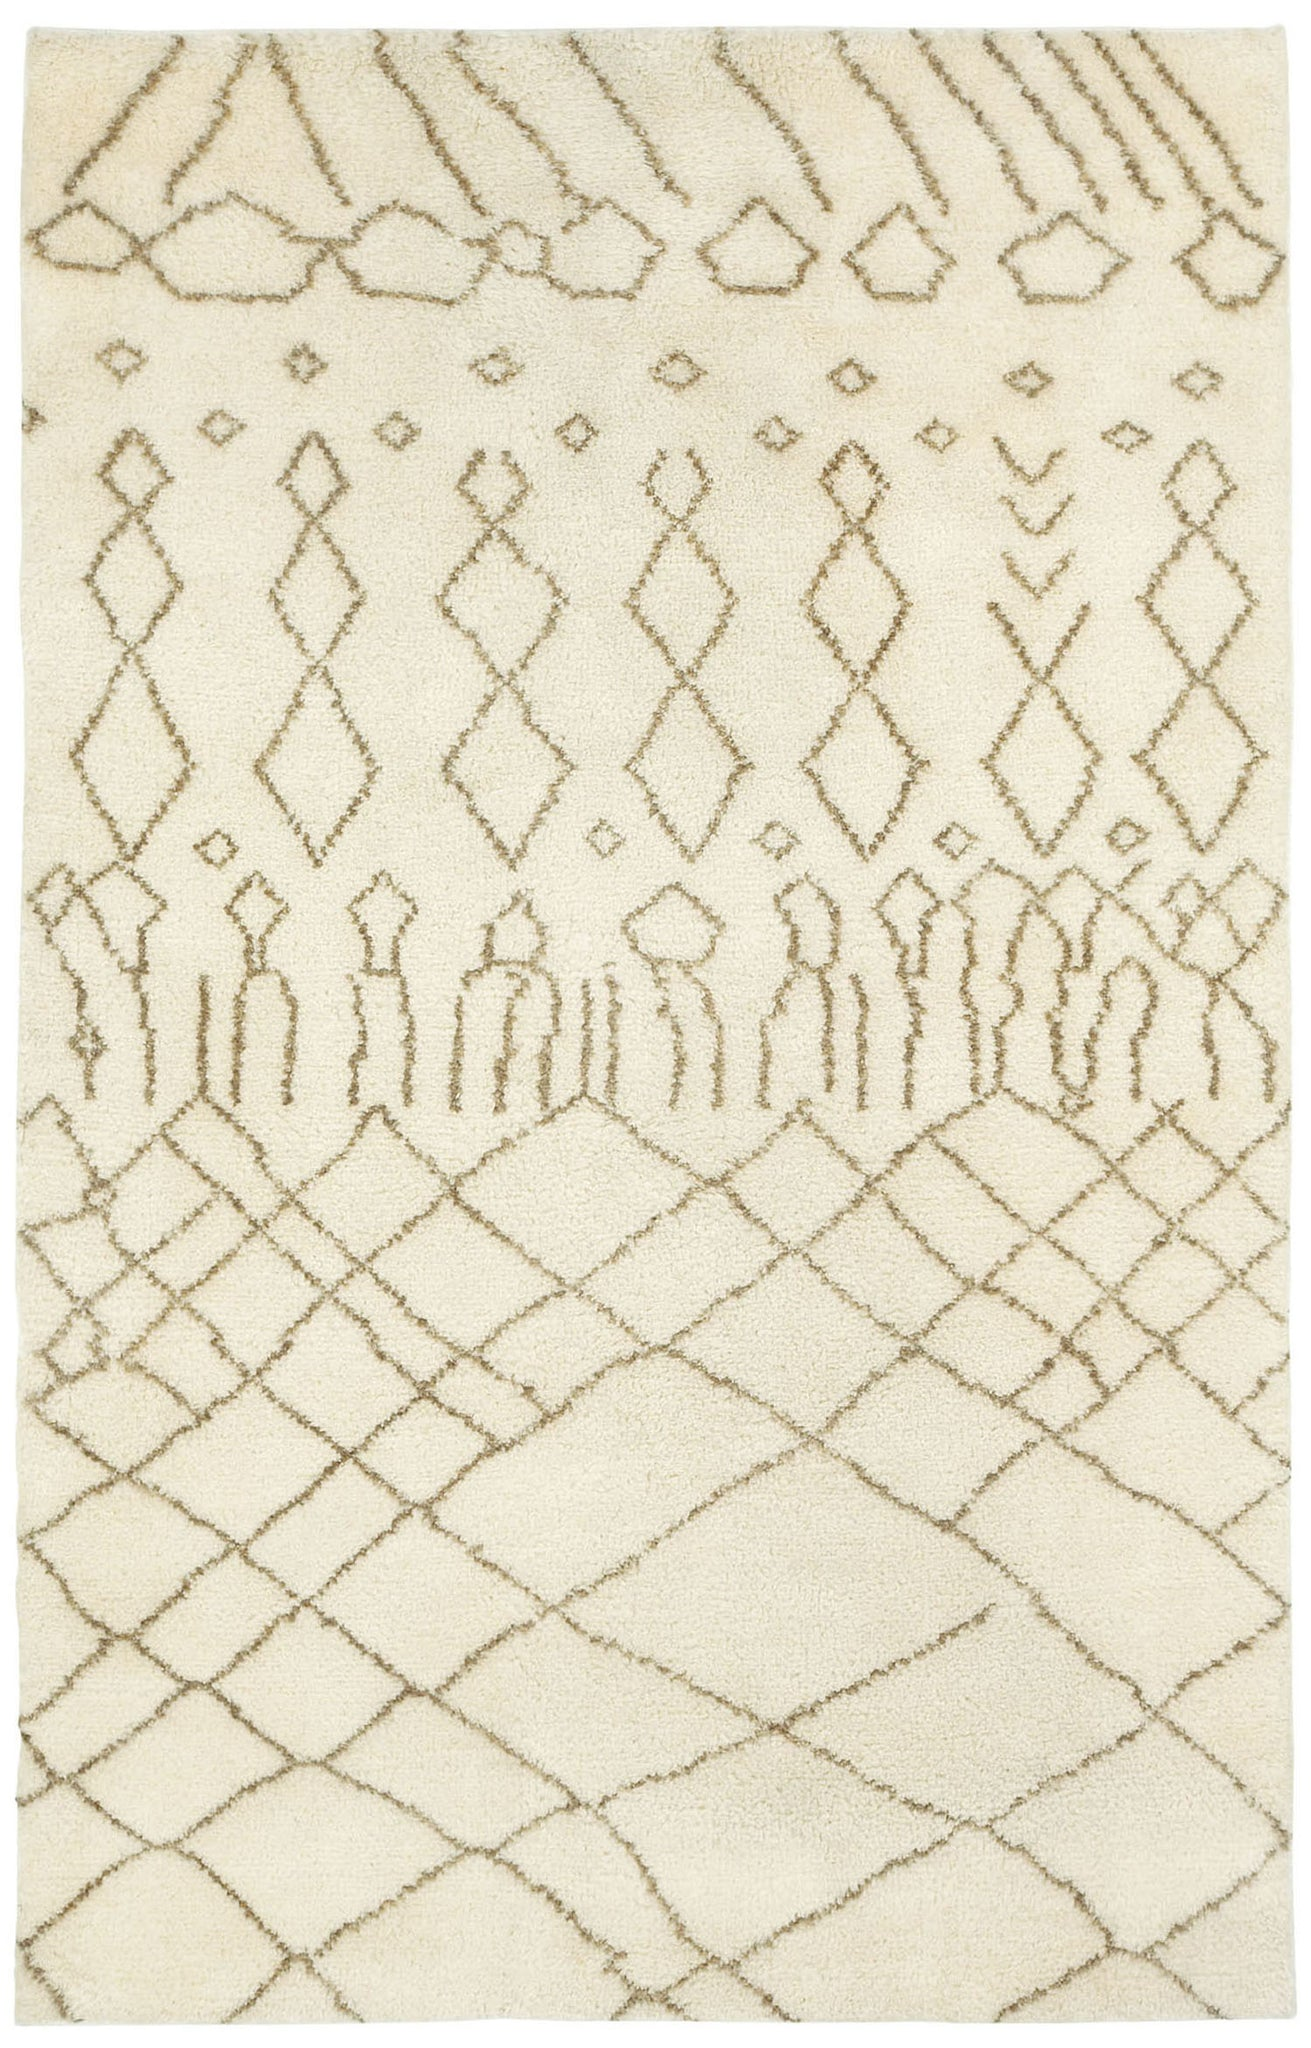 Capel Fortress Marrakesh 1915 Light Beige 600 Area Rug main image